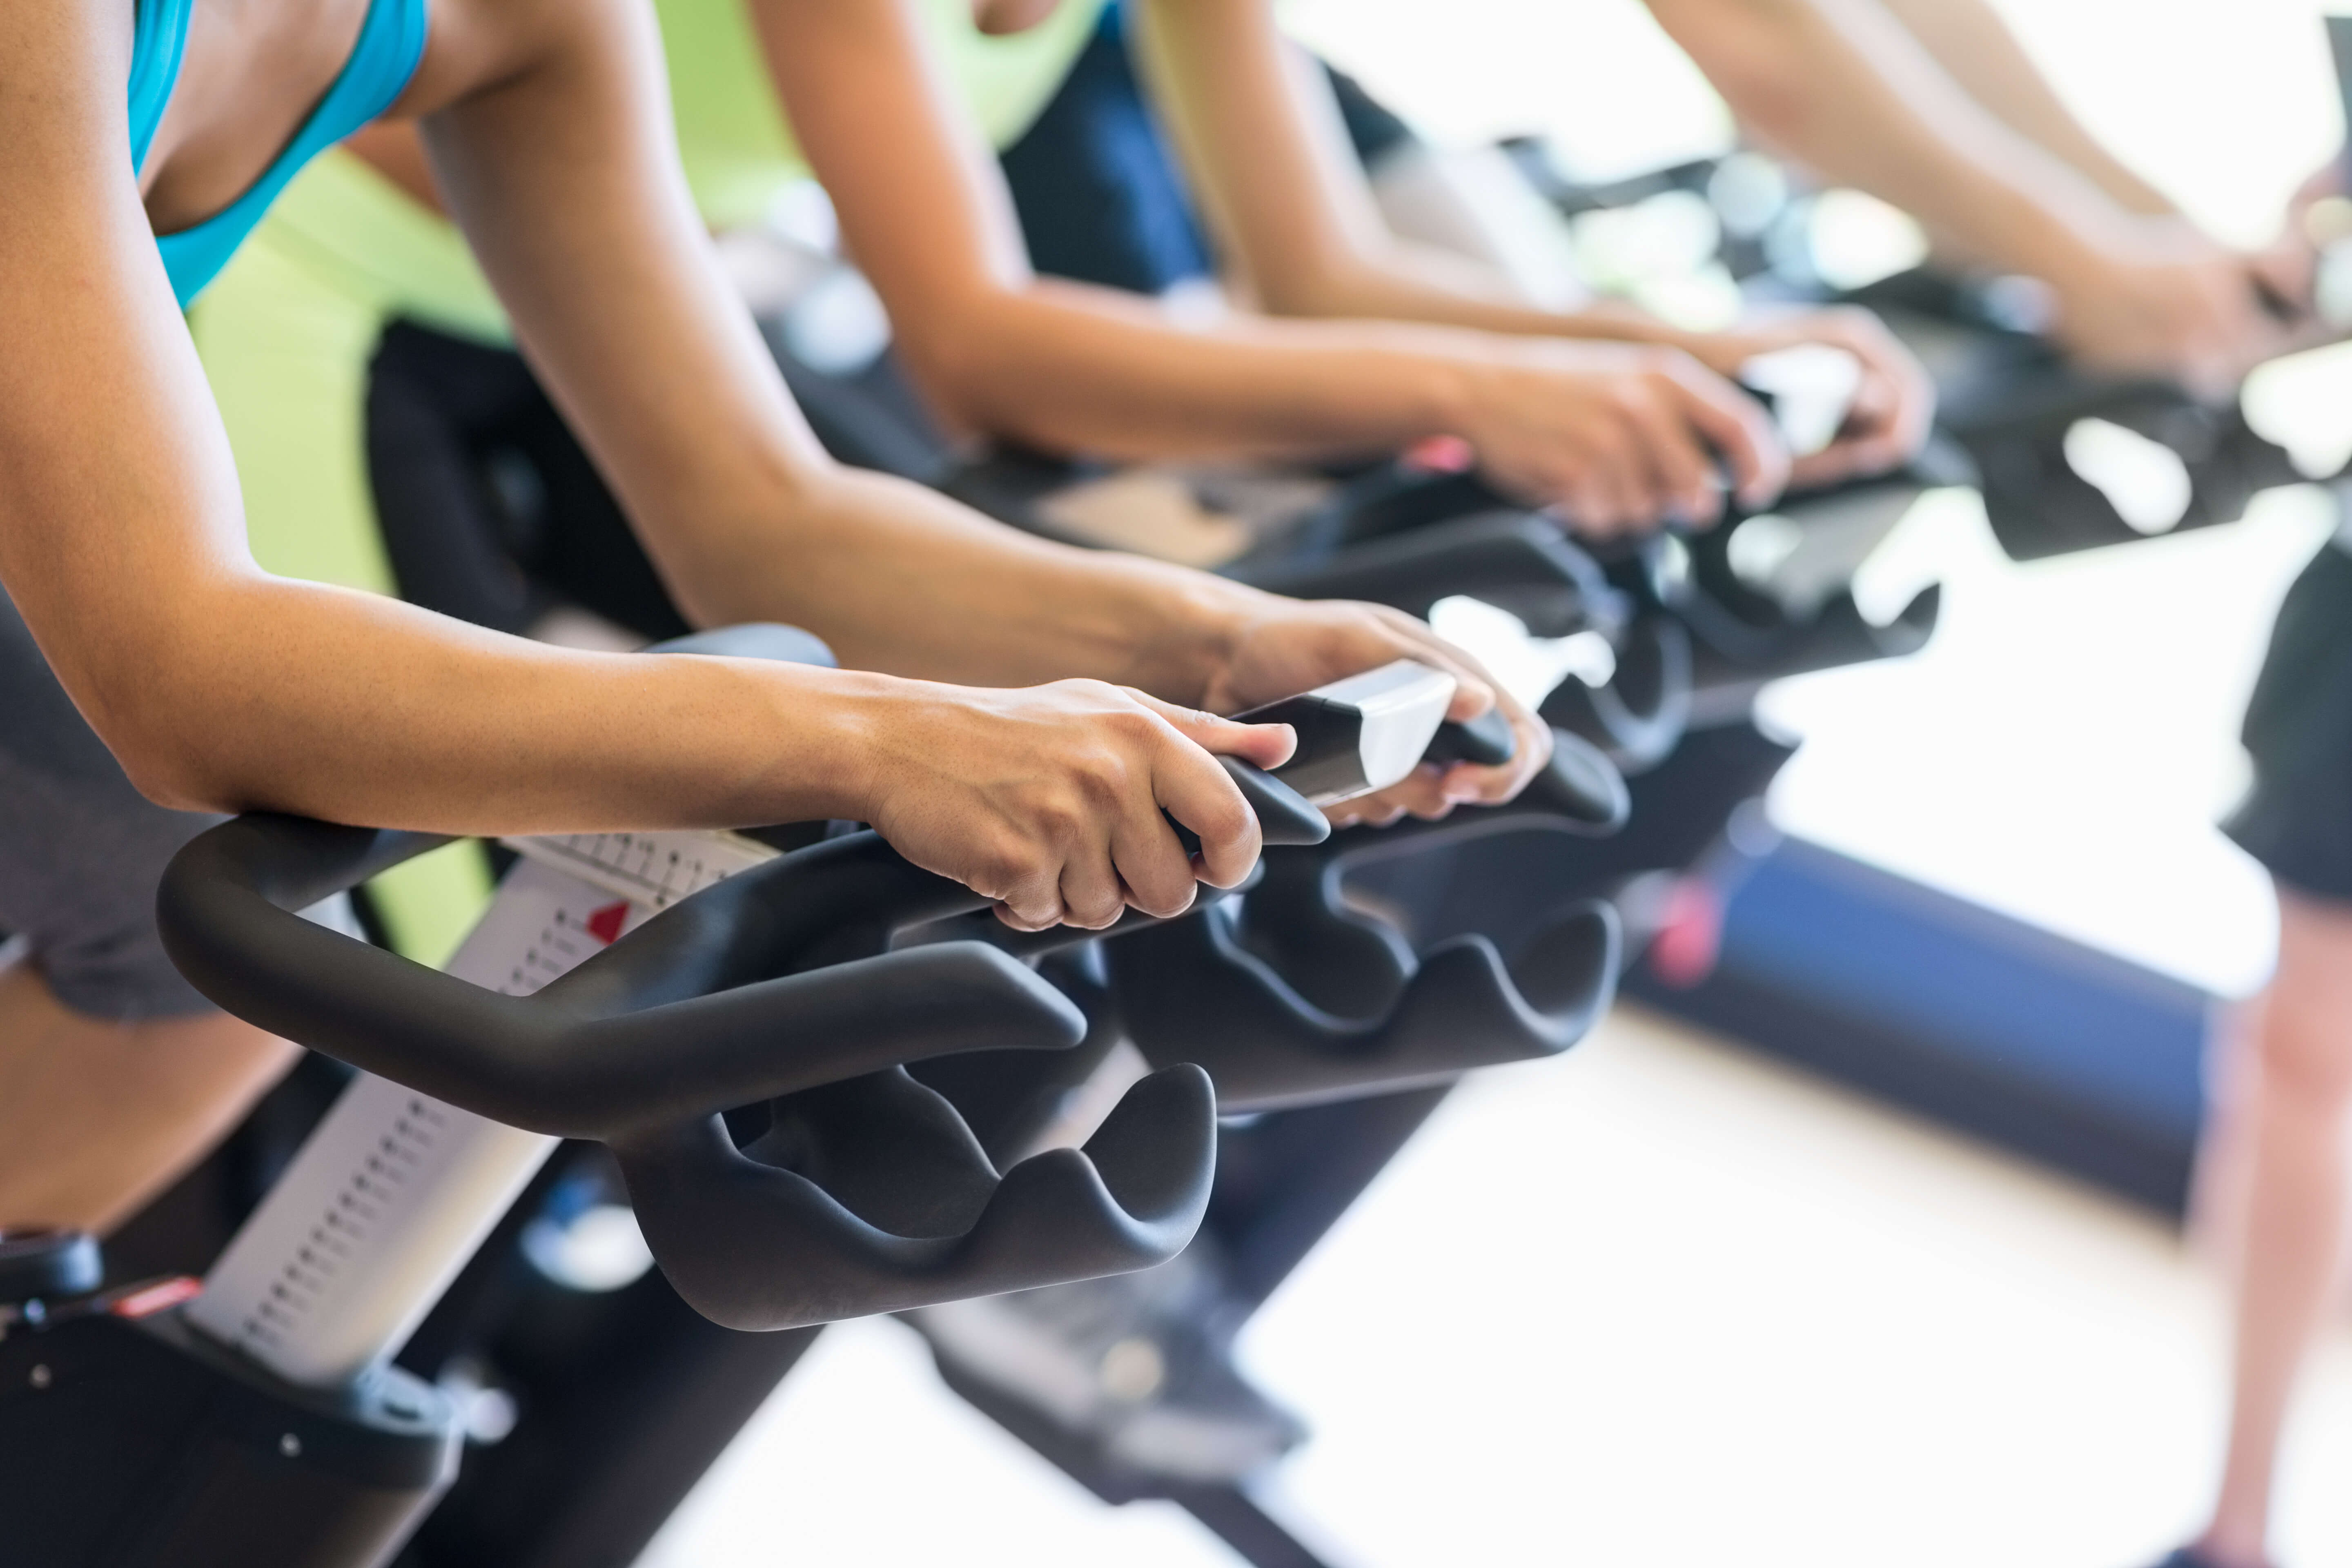 Third position on a spin bike